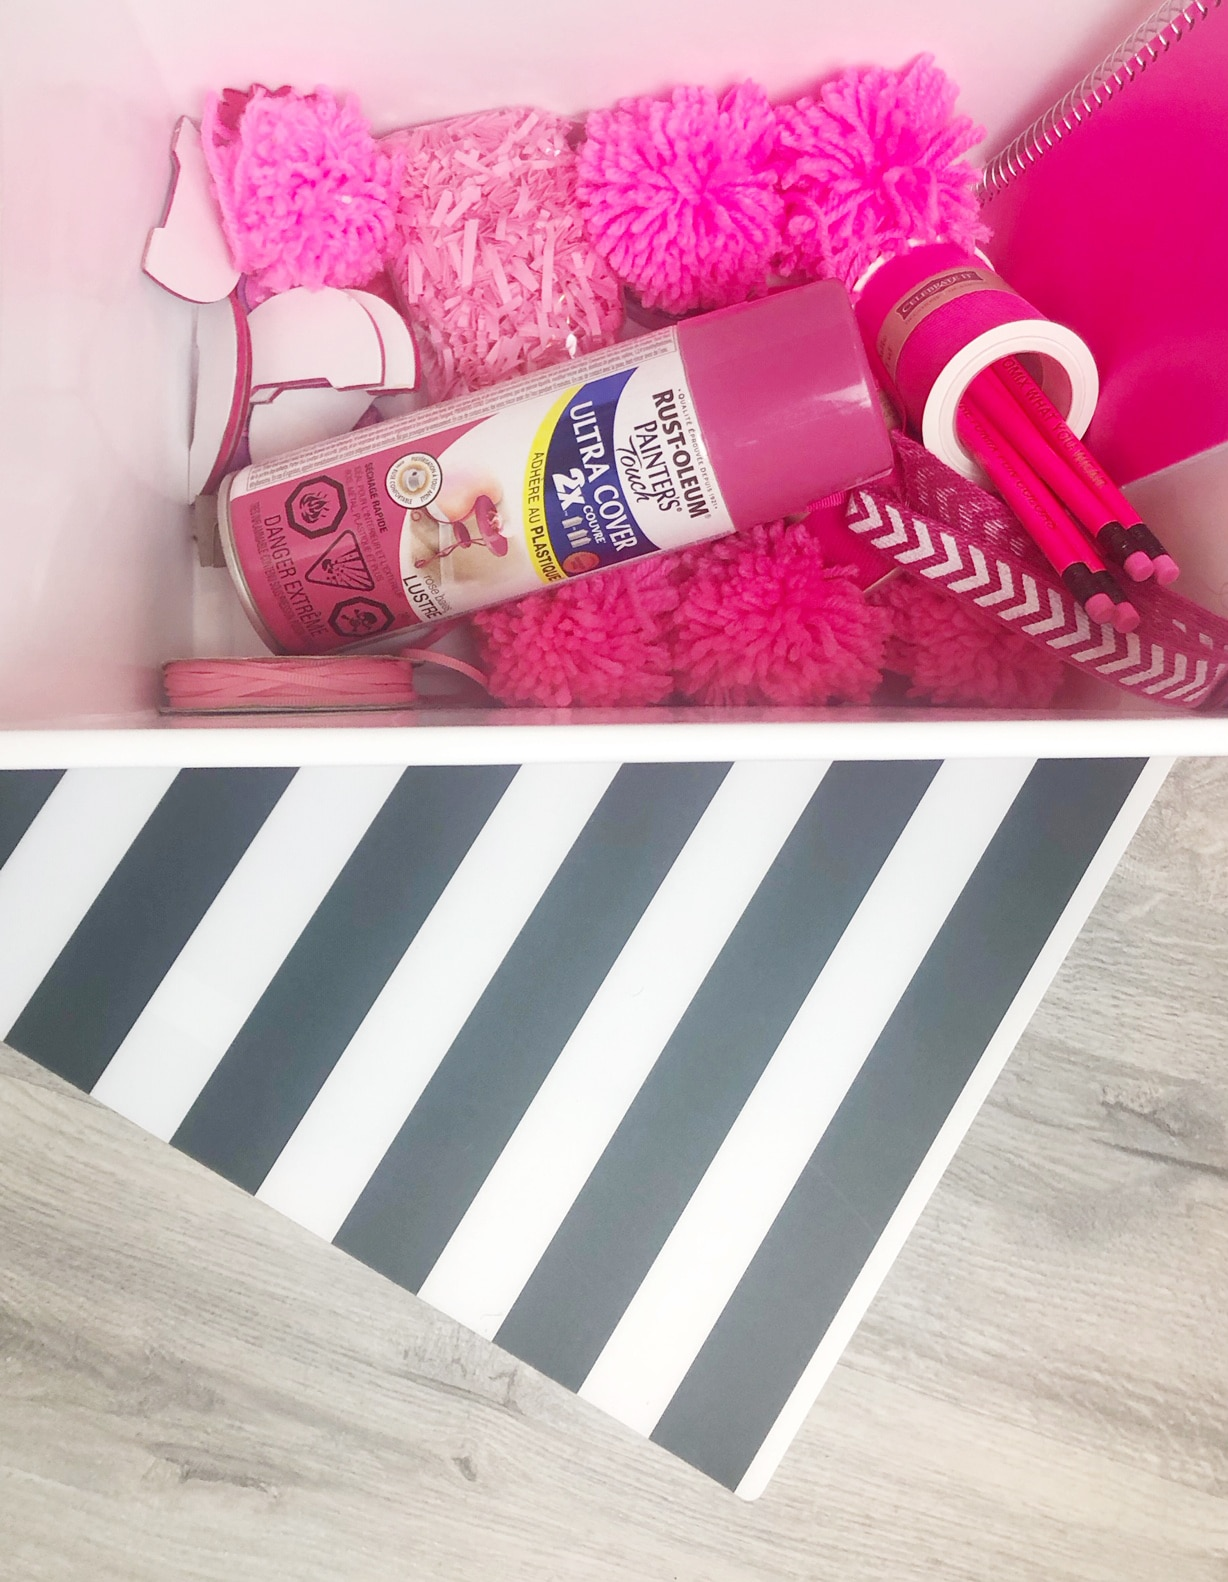 Craft Room Organization - organize by color.